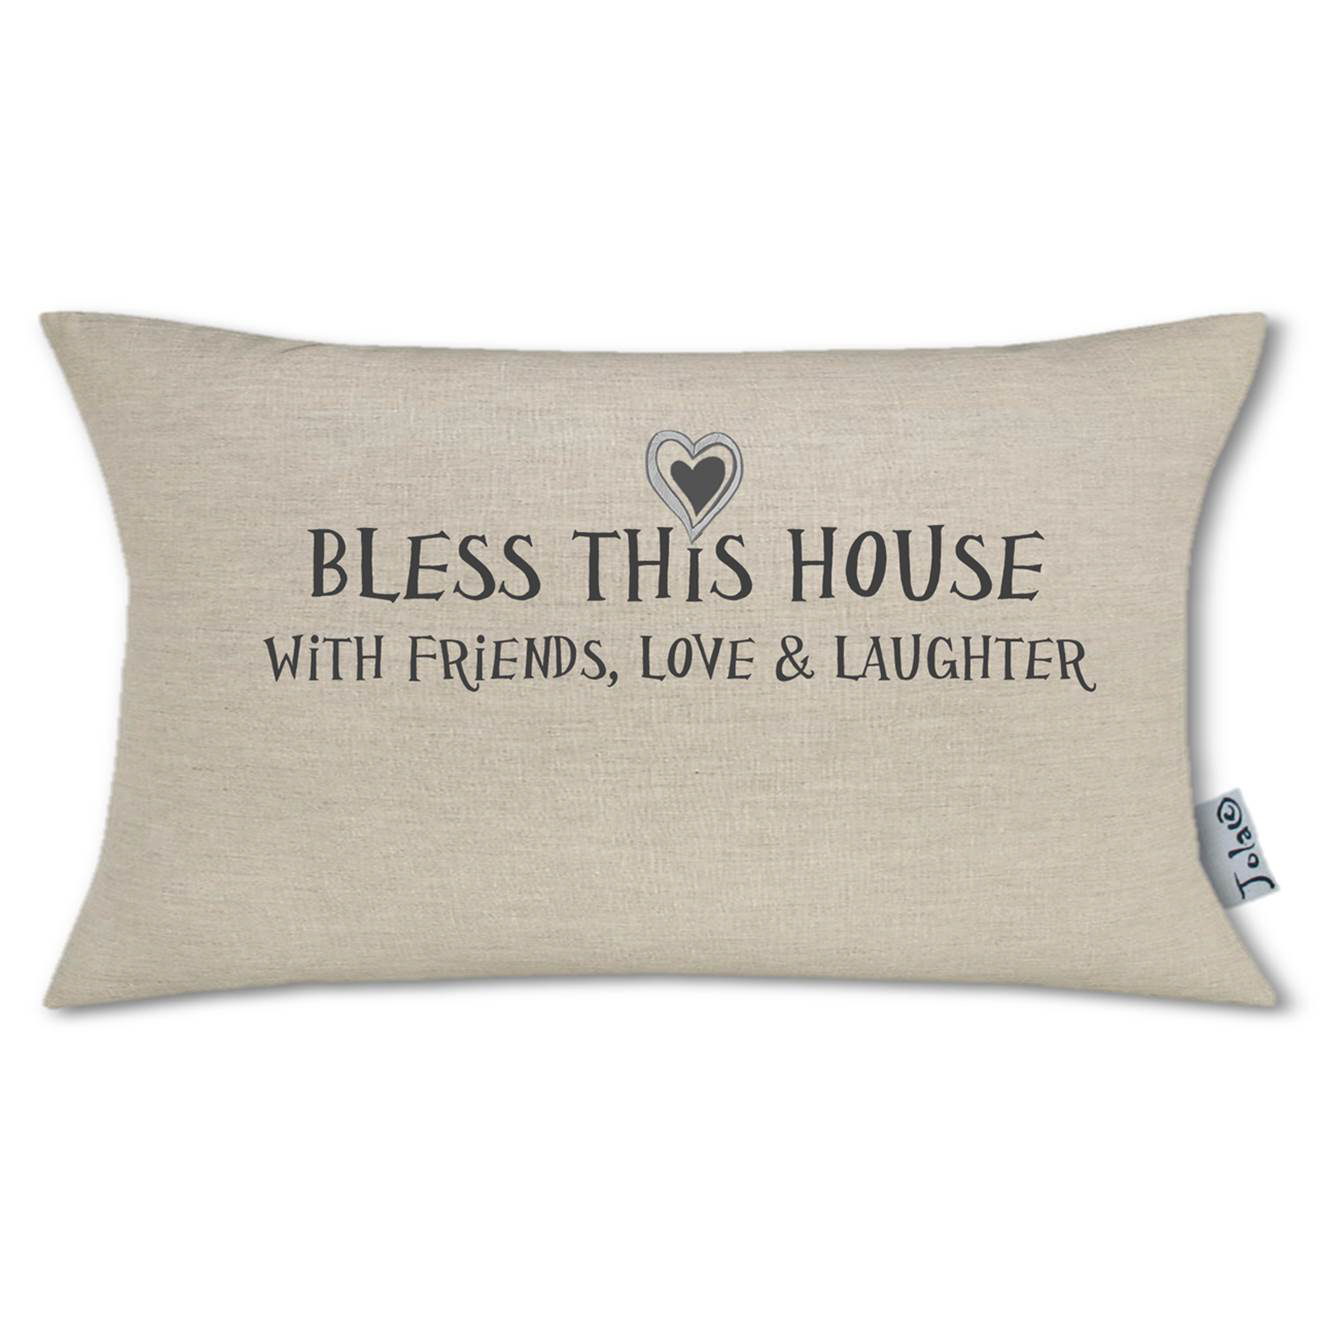 Bless This House Large Linen Boudoir Cushion